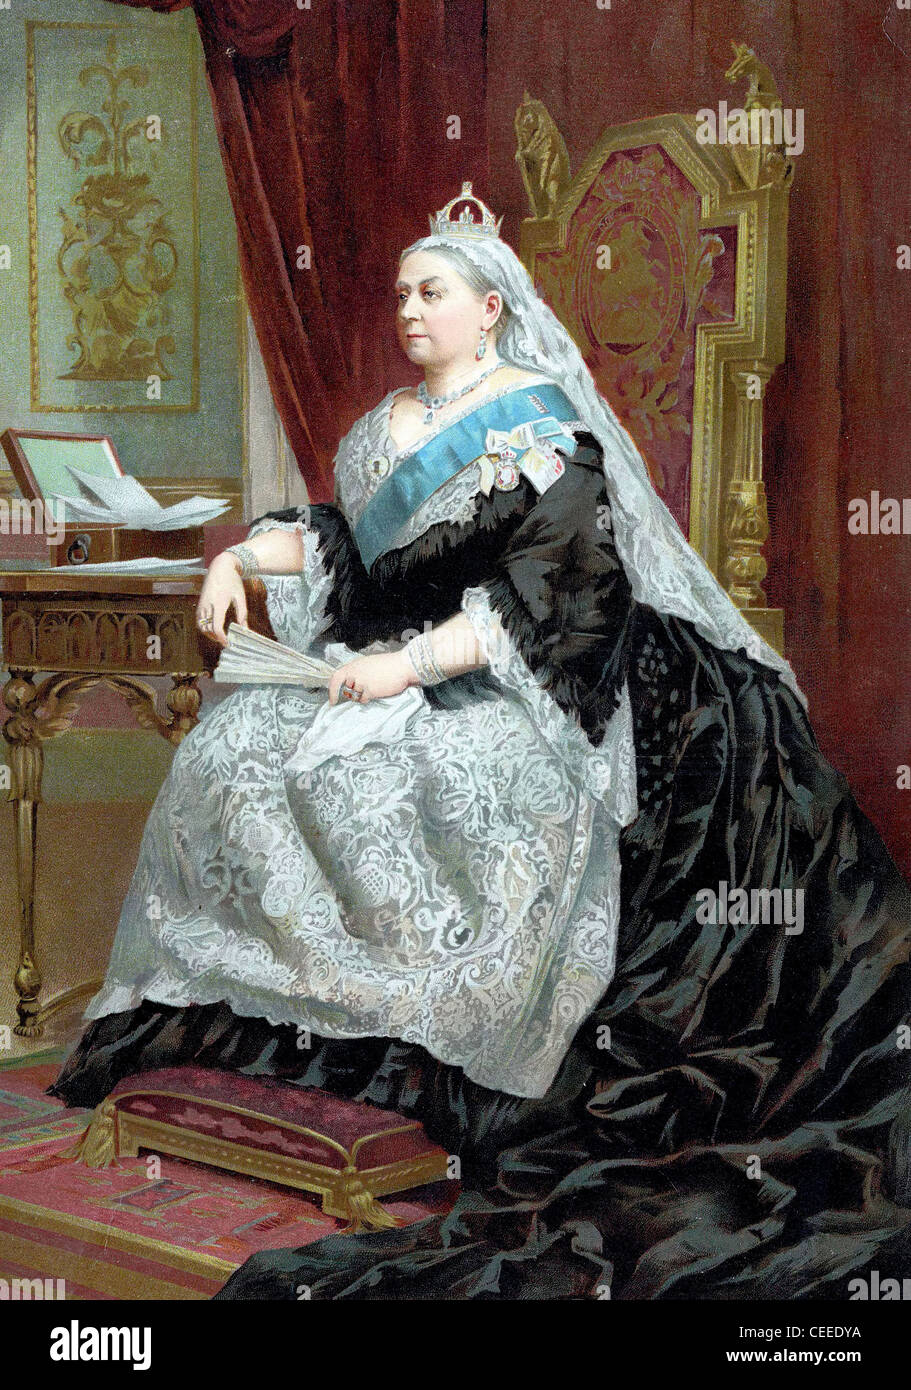 Queen Victoria (1819-1901) queen of United Kingdom from 1837, Empress of India from 1876, crowned in 1838 - Stock Image